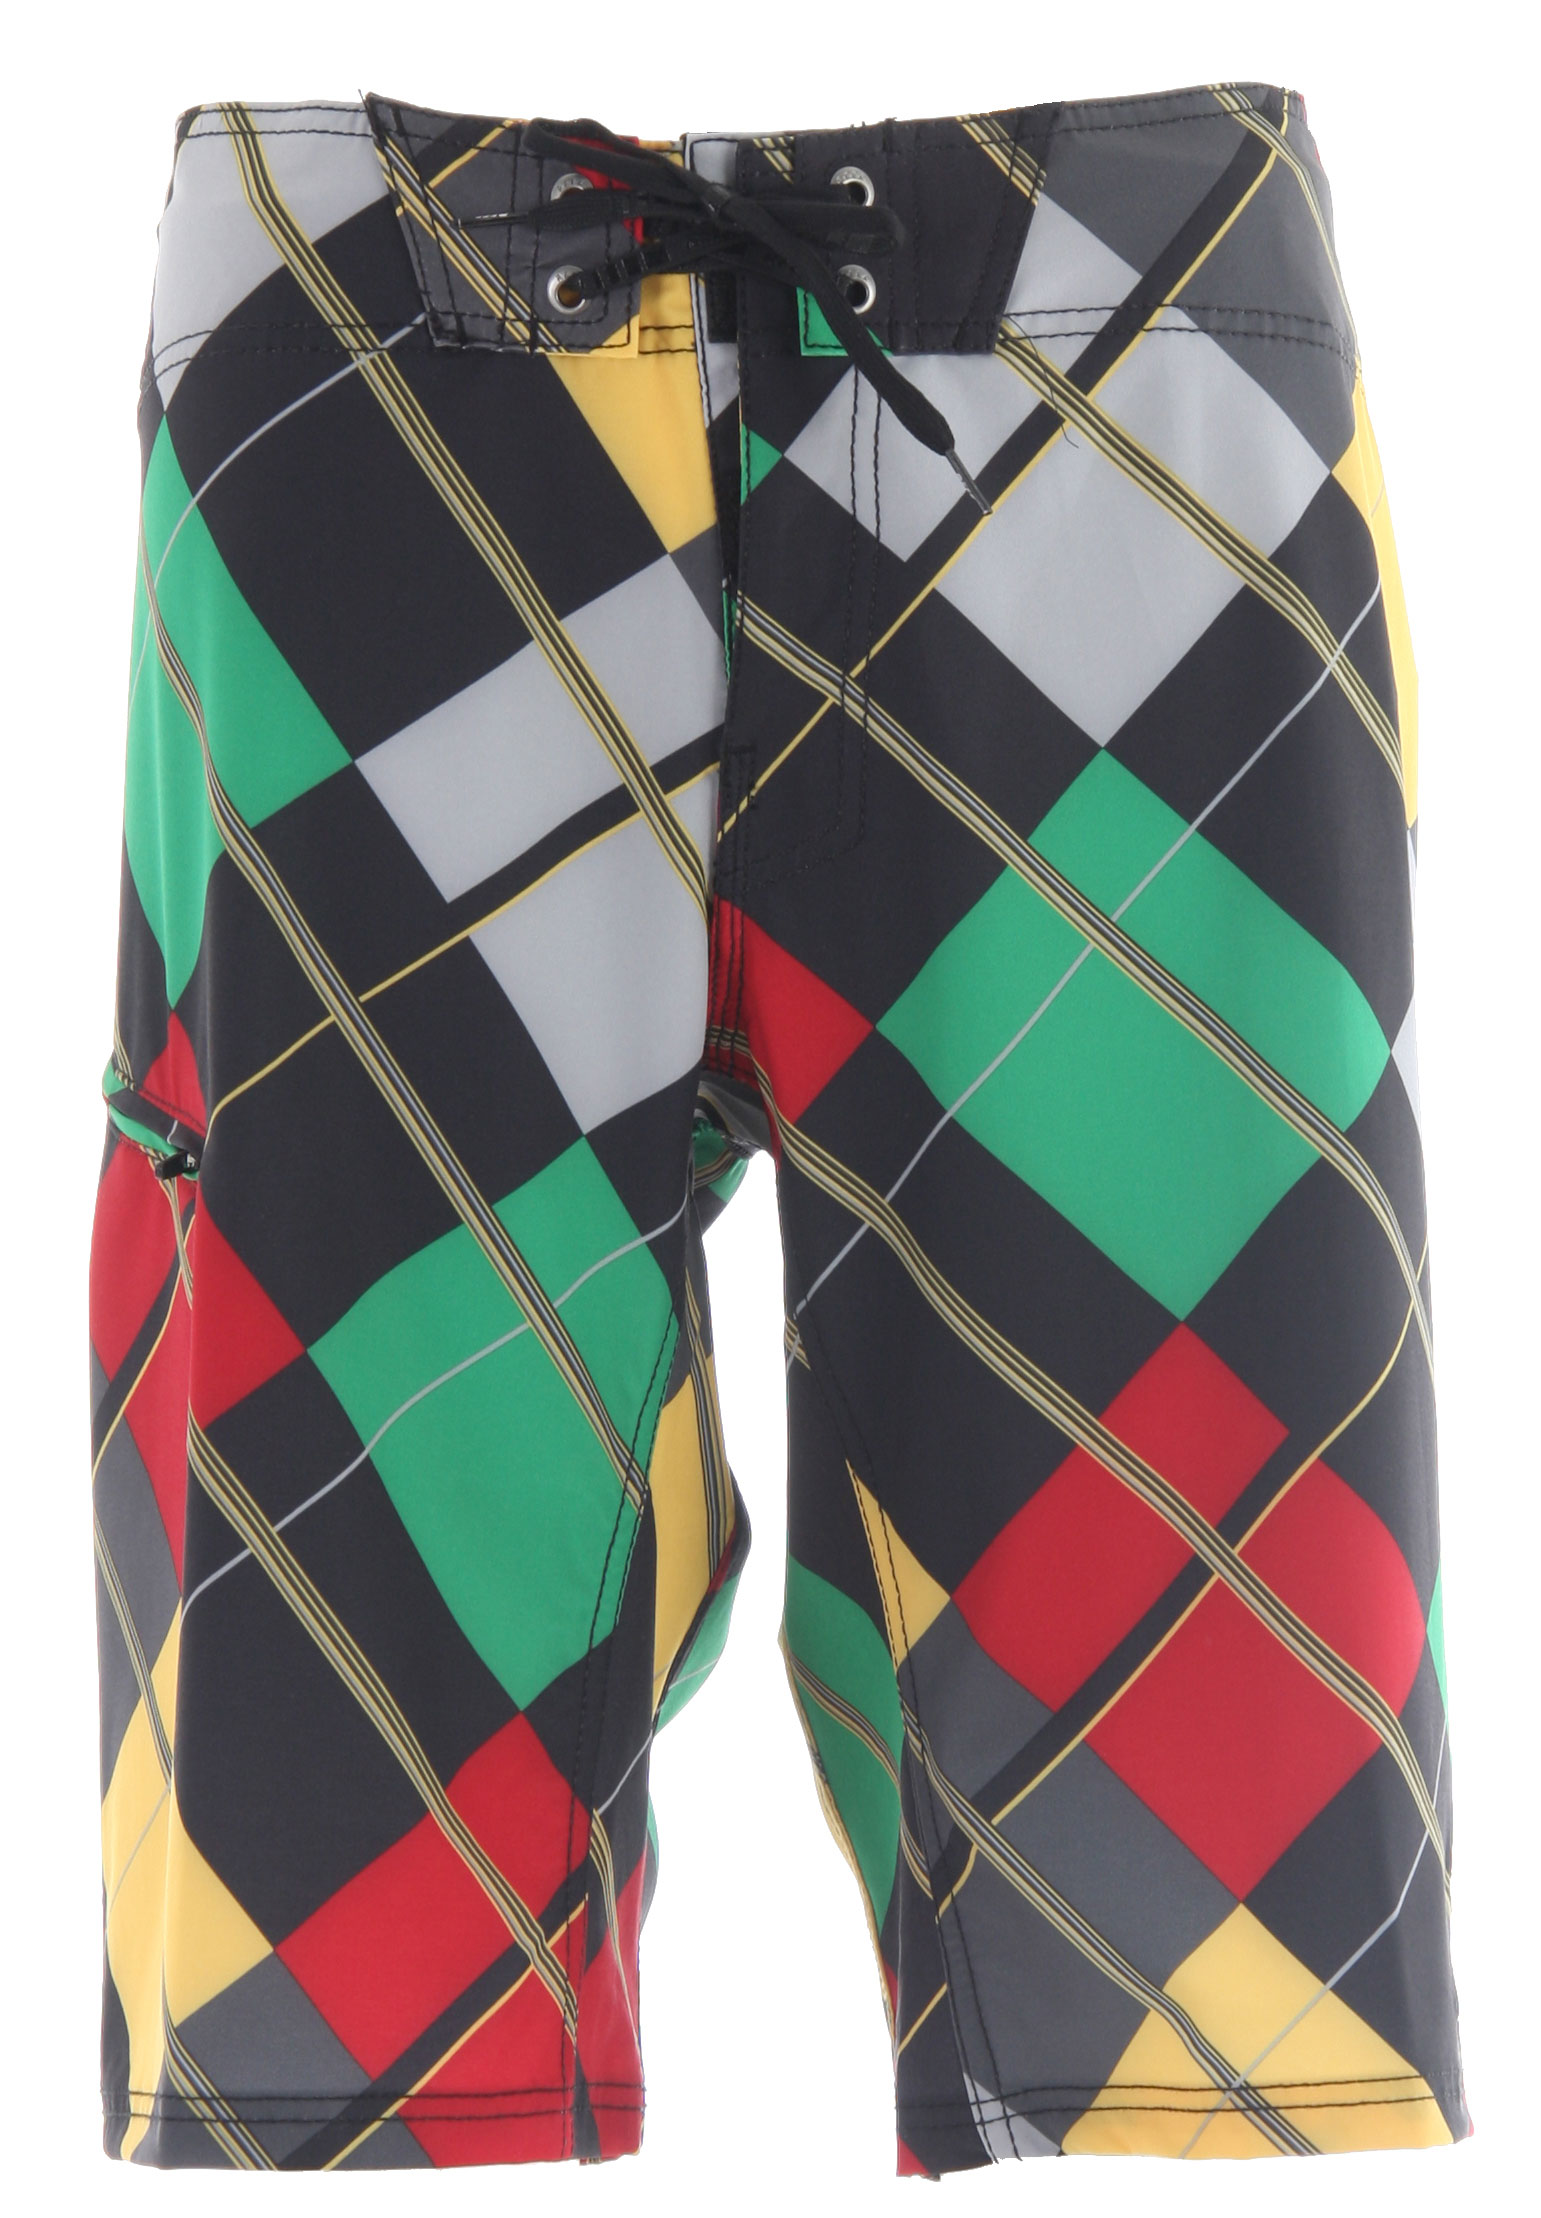 "Surf Key Features of the Reef Unsaturated Boardshorts: 4 way elite stretch febric 85/15 polyester/ spandex All over plaid print Ridiculously comfortable inside waistband detail Laser cut applique on left leg Welt pocket with locking ykk zipper on right leg Custom logo eyelets 22"" outseam - $35.95"